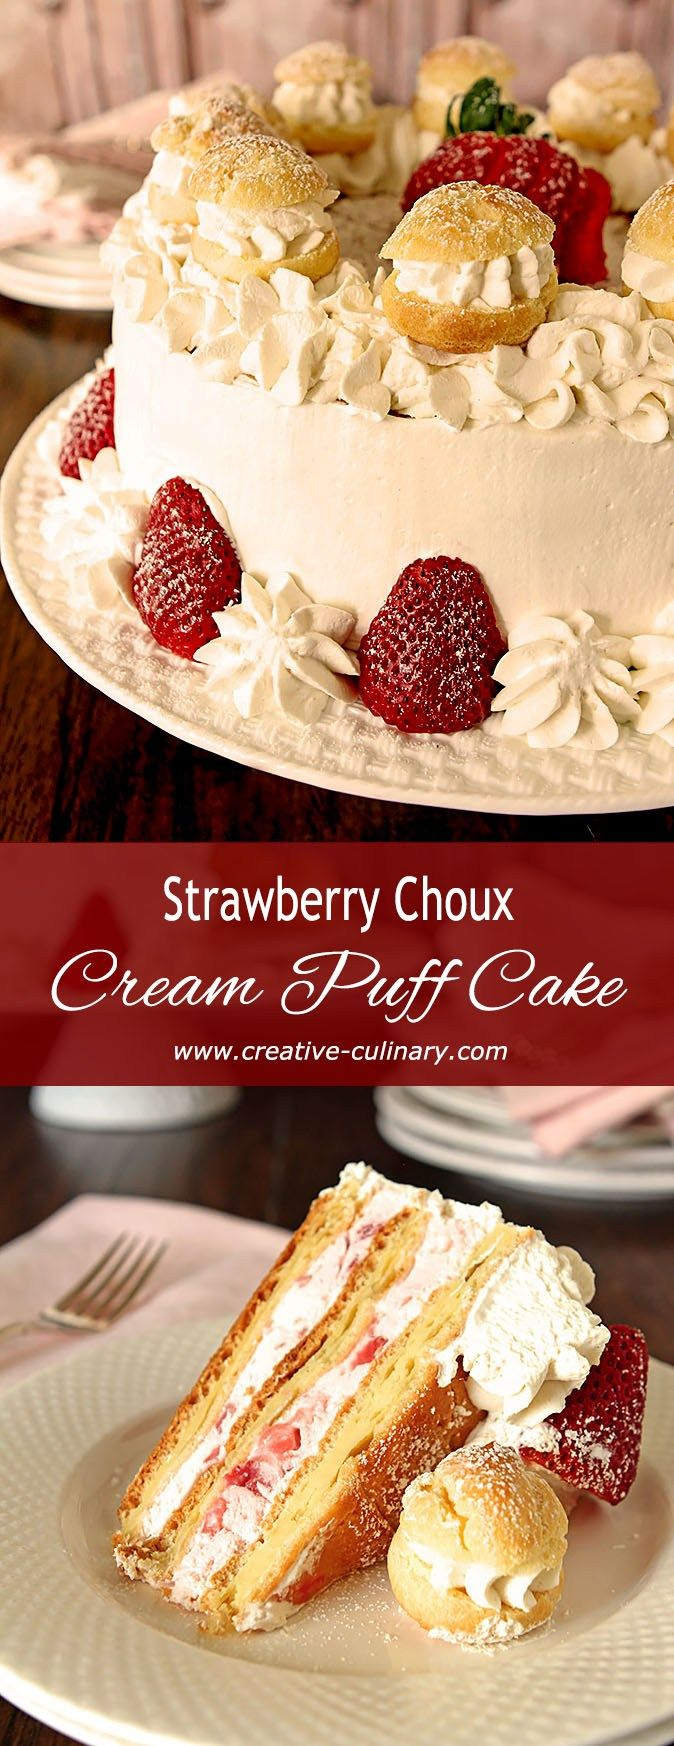 This Strawberry Cream Puff (Choux) Cake is amazing; layers of choux pastry (cream puff in layer form) are combined with strawberries and whipped cream.